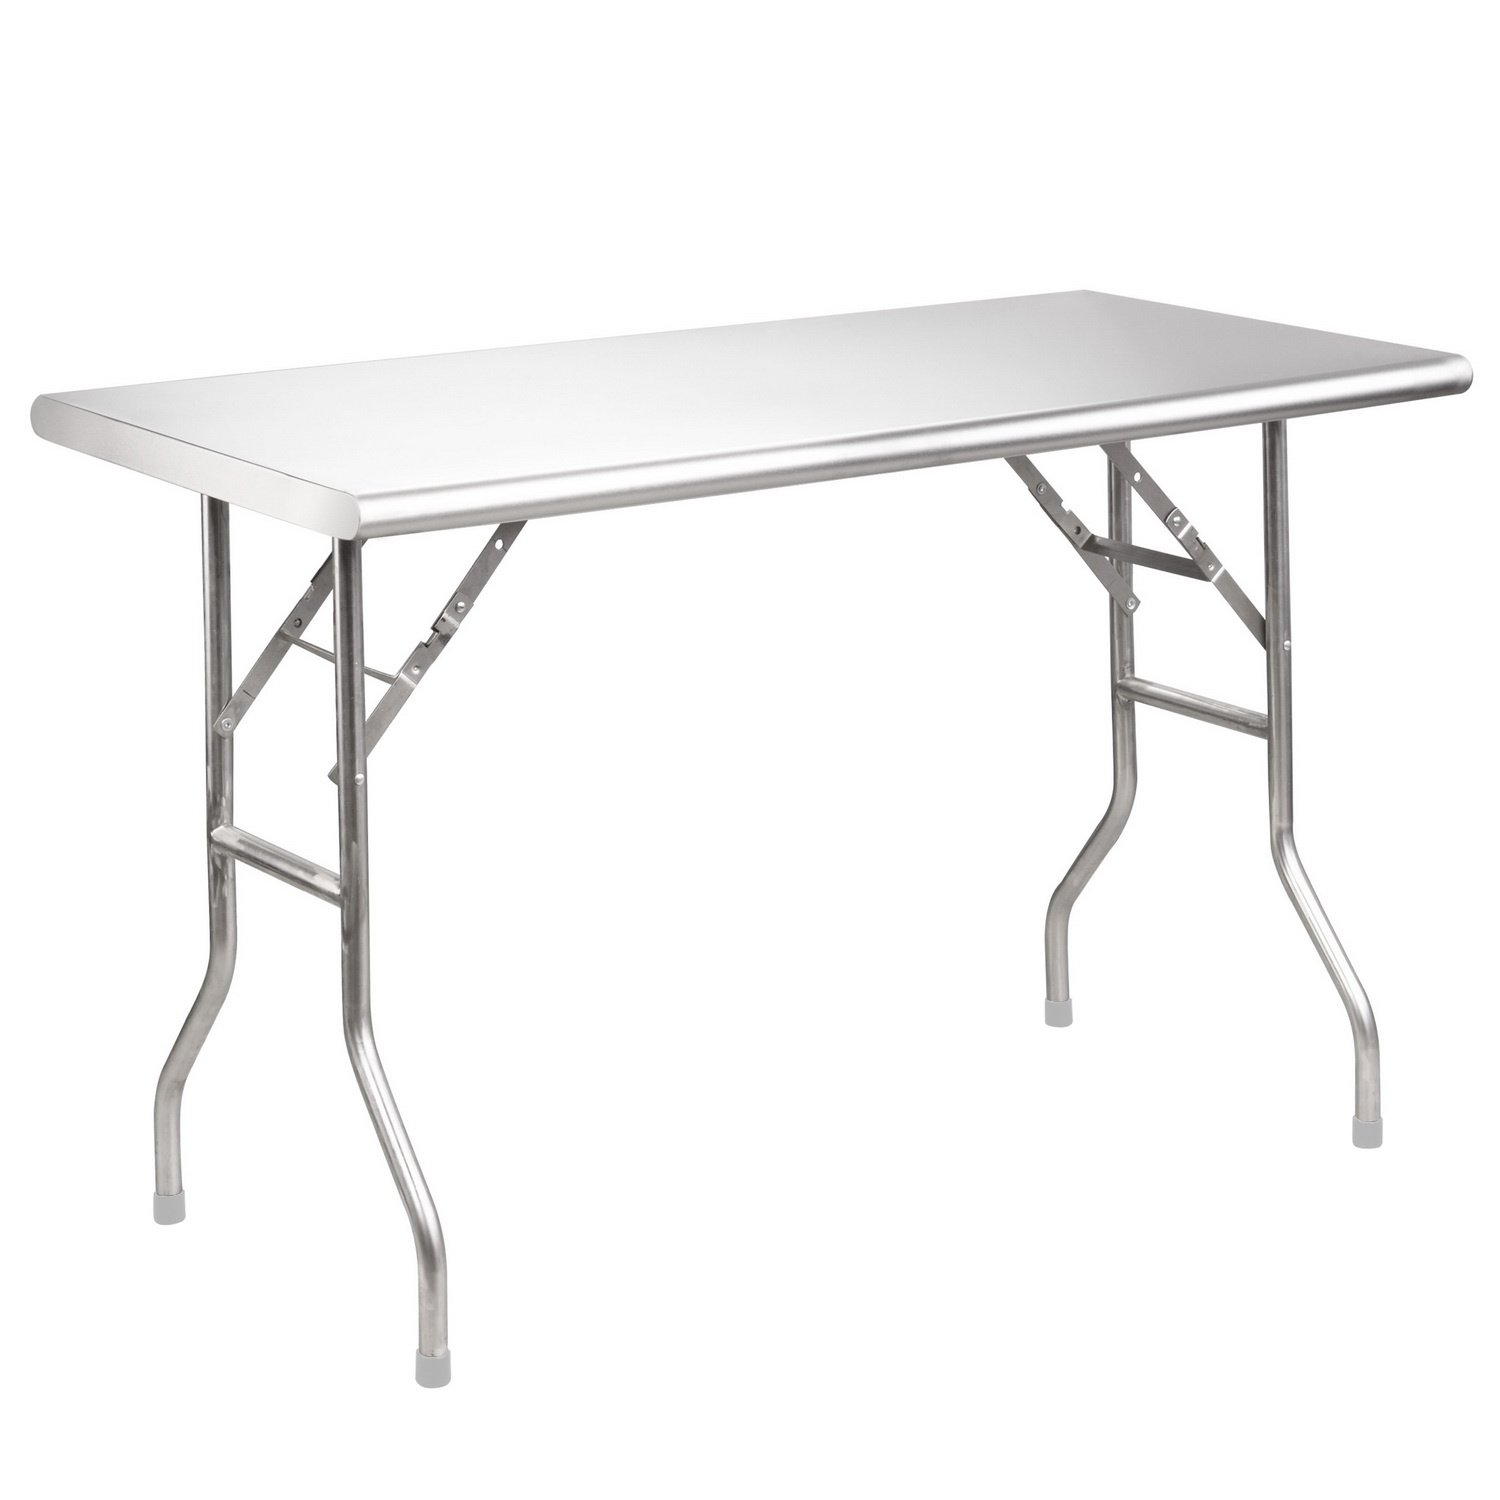 Royal Gourmet Stainless Steel Folding Work Table, 48'' L x 24'' W by Royal Gourmet (Image #1)